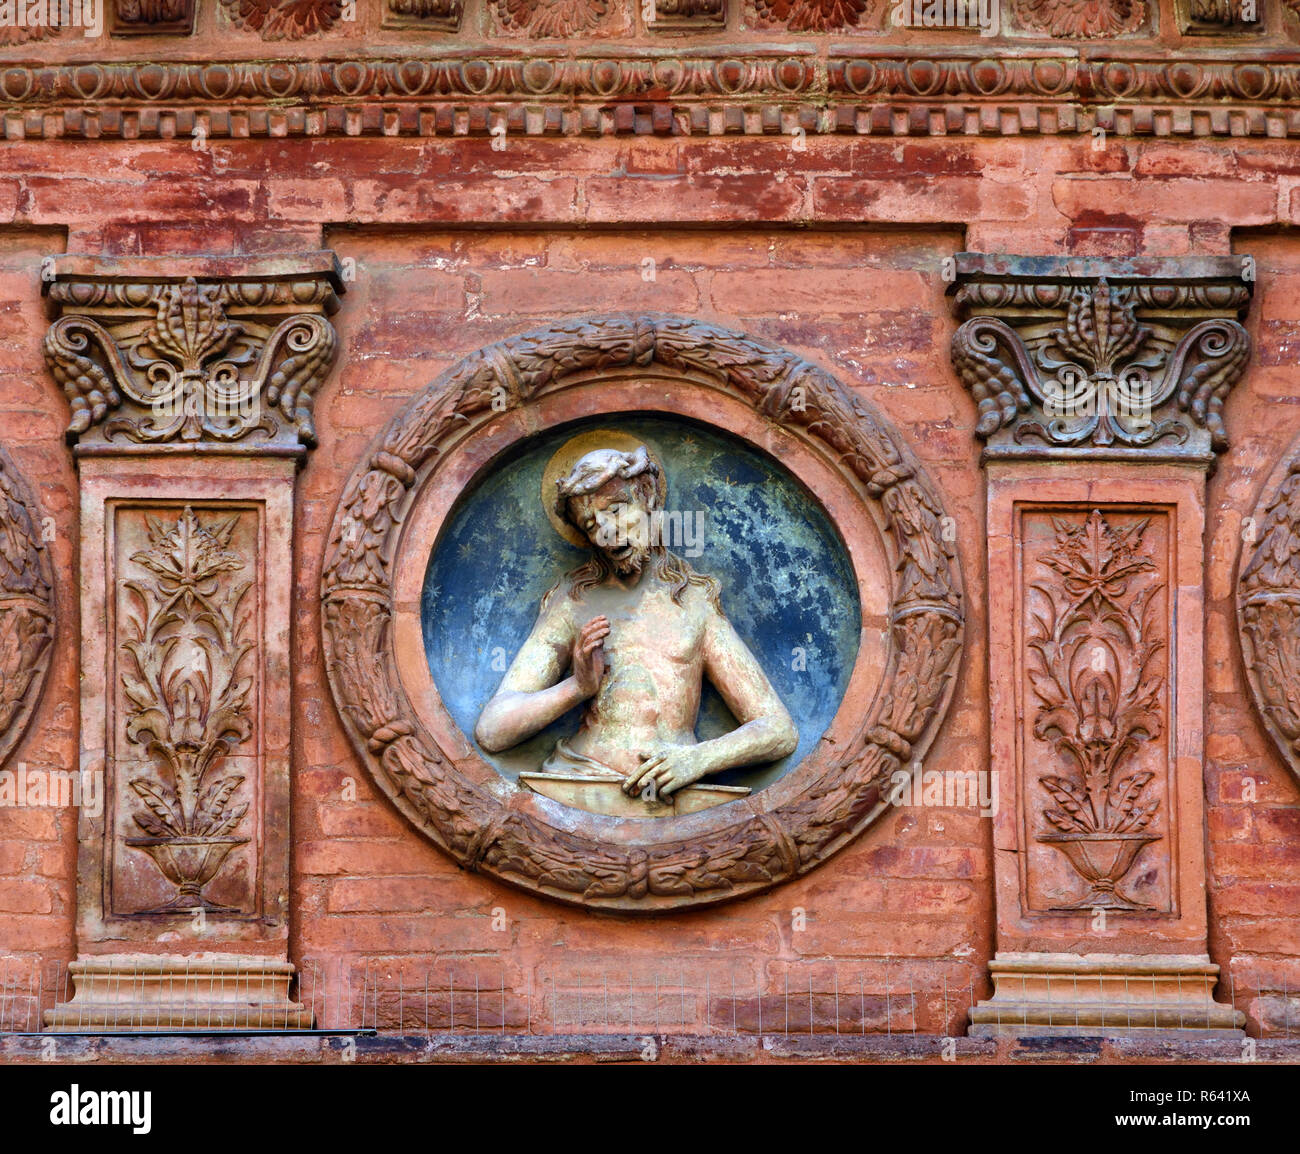 The Church of Spirito Santo Bologna Italy, Italian. ( This tiny church is notable for its facade featuring relief sculptures. It dates back to the 15th century.) - Stock Image